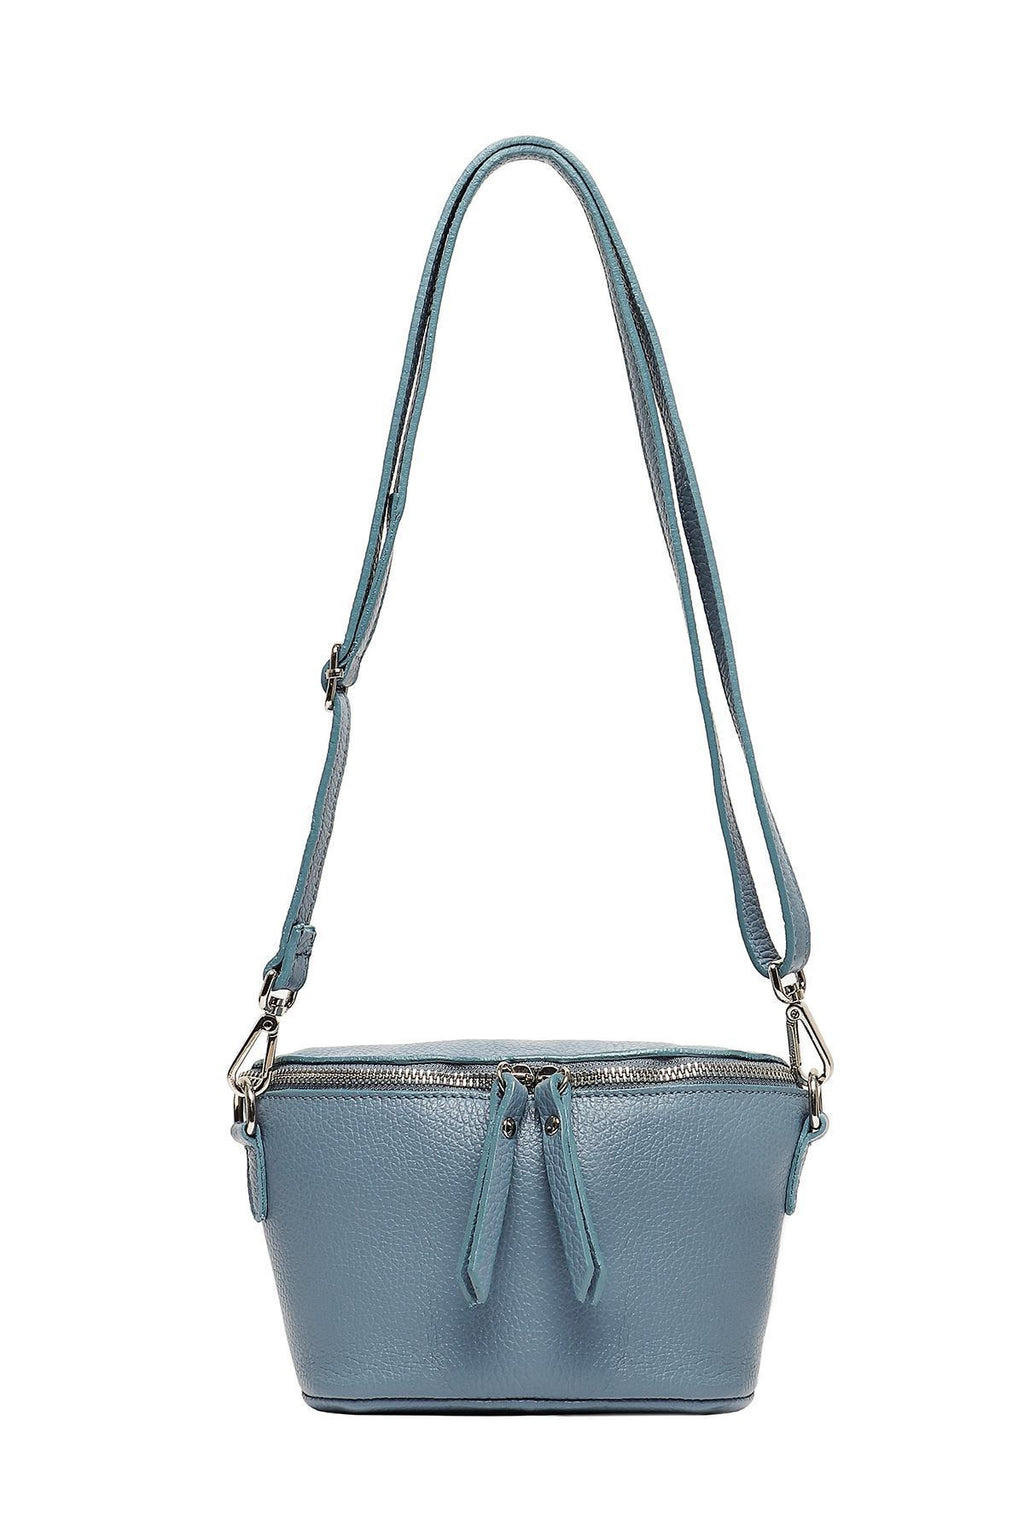 Cherry Paris - Emmanuelle bag jean blue/greyish